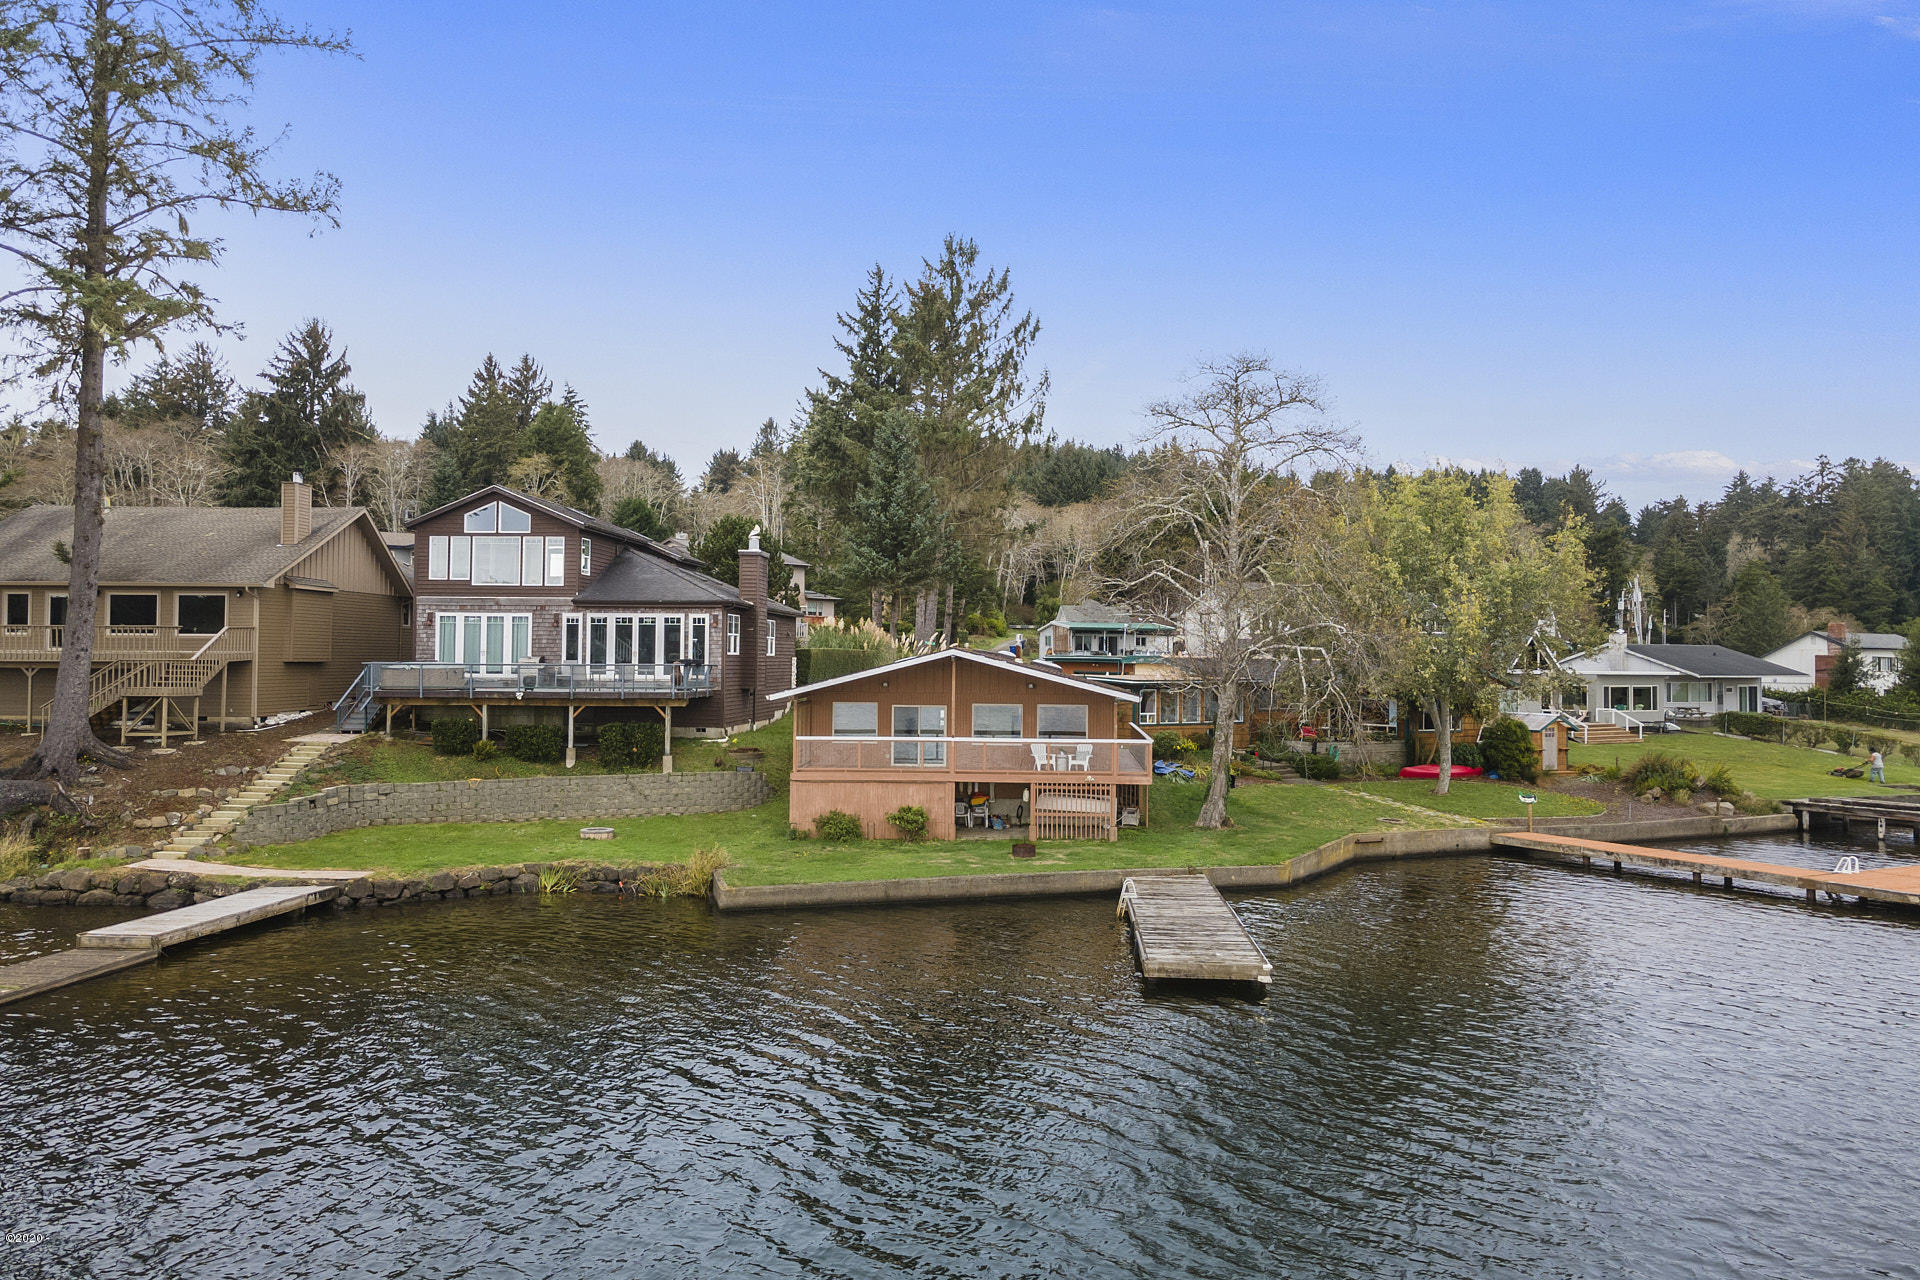 744 NE Lake Dr, Lincoln City, OR 97367 - Lakeside View of Home